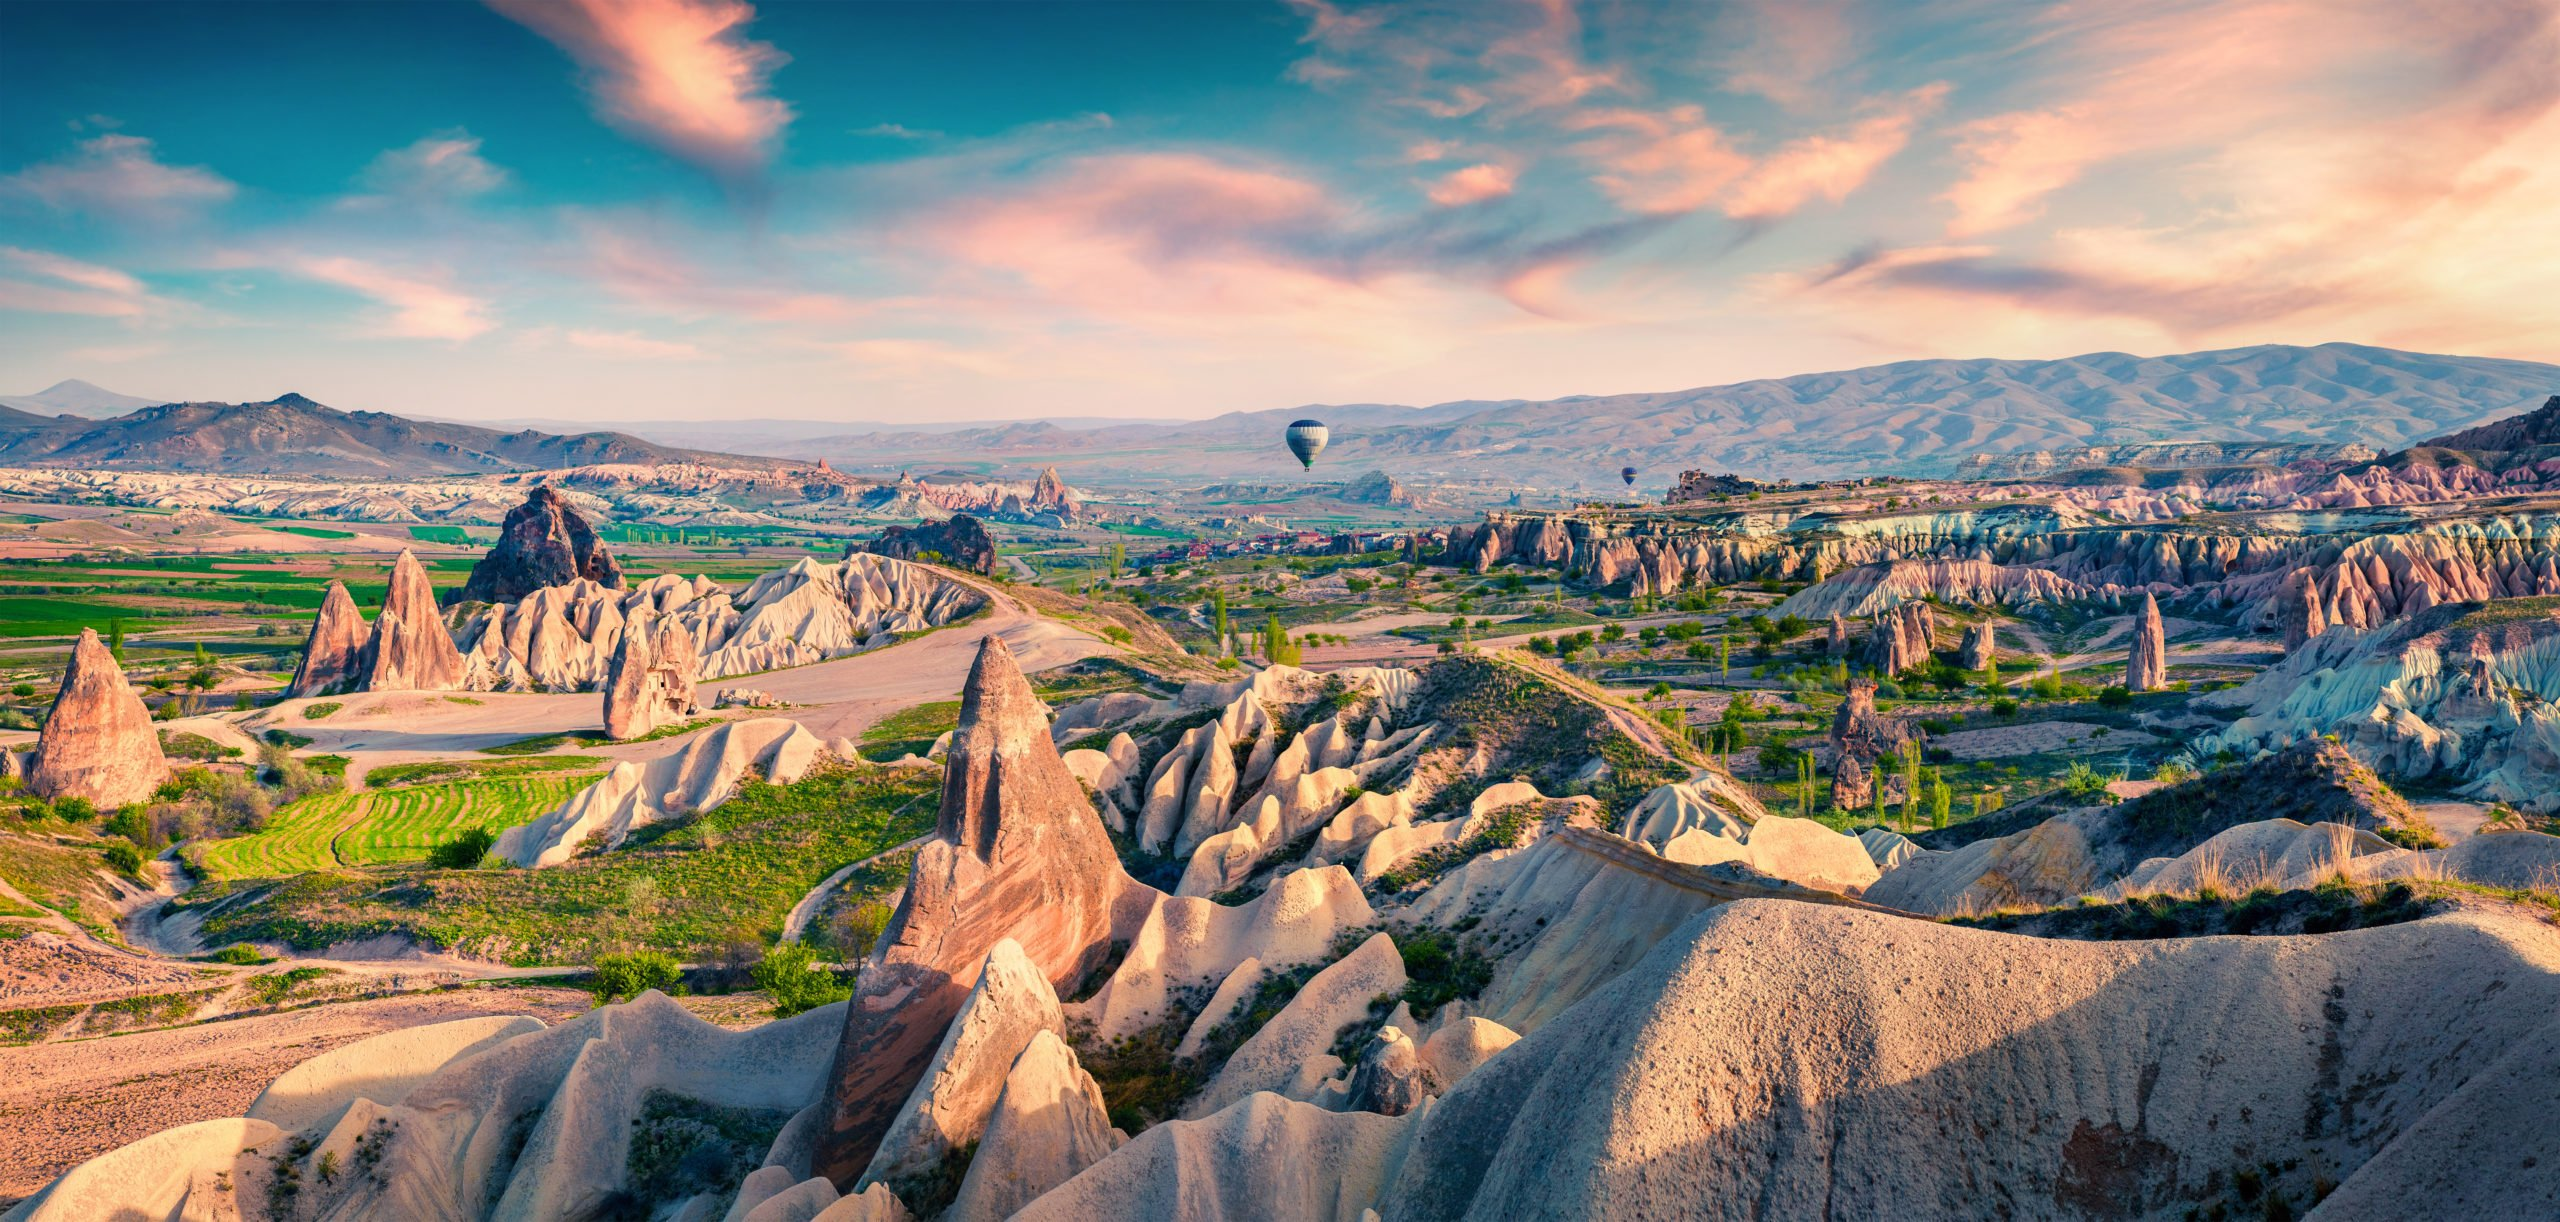 Join The Cappadocia 3 Day Tour From Istanbul